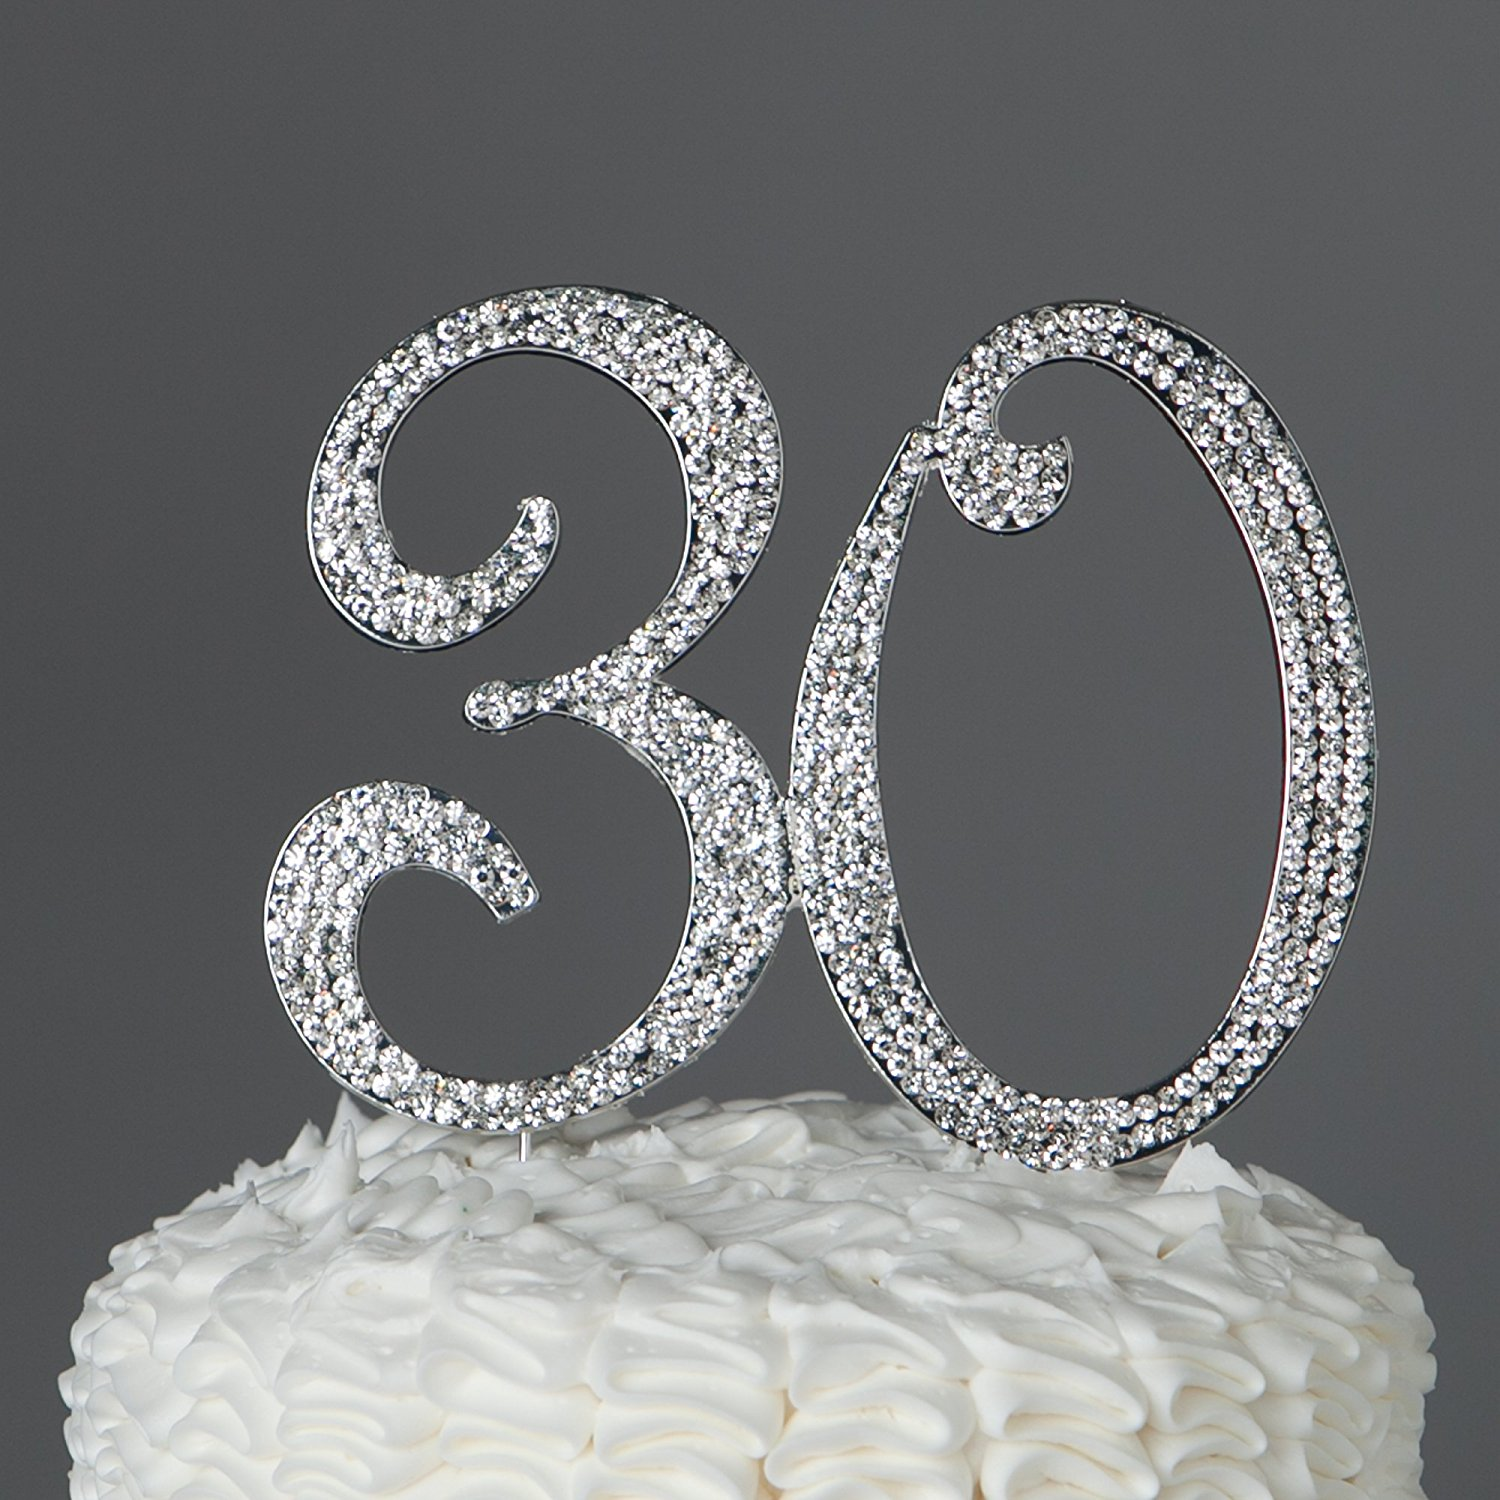 30 Cake Topper For 30th Birthday Or Anniversary Gold Party Supplies